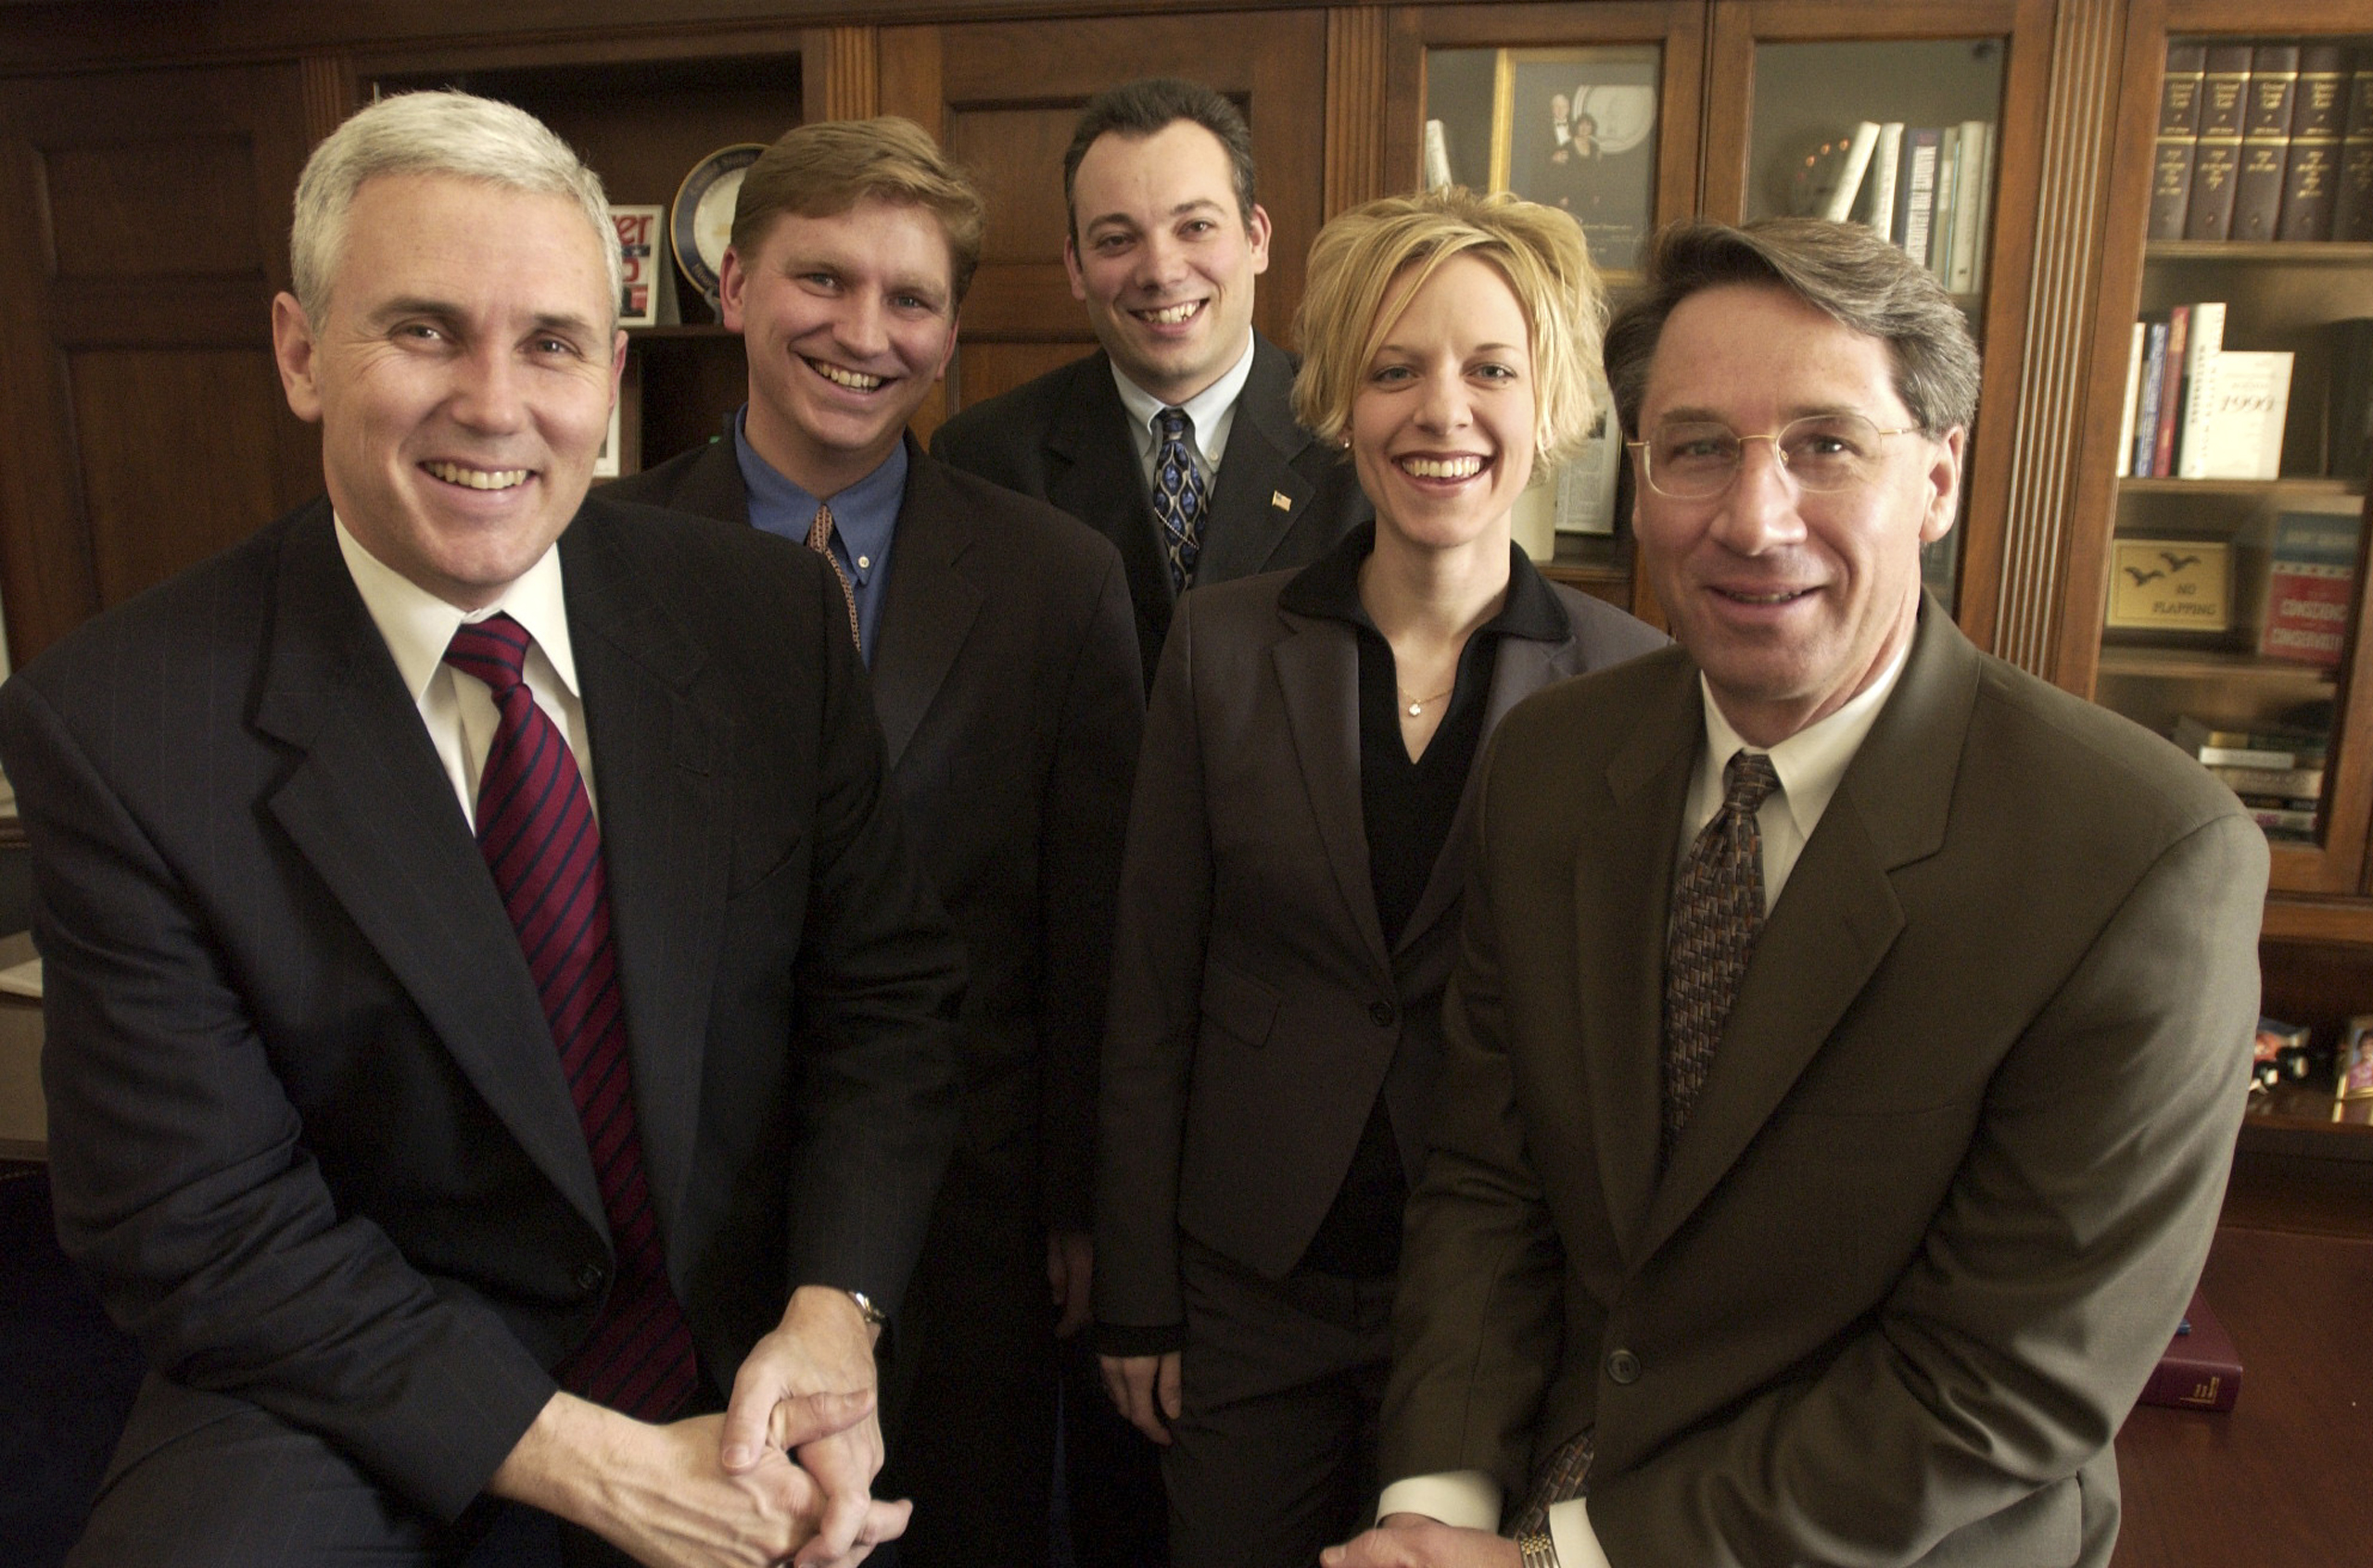 From left, Rep. Mike Pence, R-Ind., Derek Karachner, Ian Slatter, Molly Jurmu, and Mark Ahearn pose for a group portrait on Dec. 12, 2001.